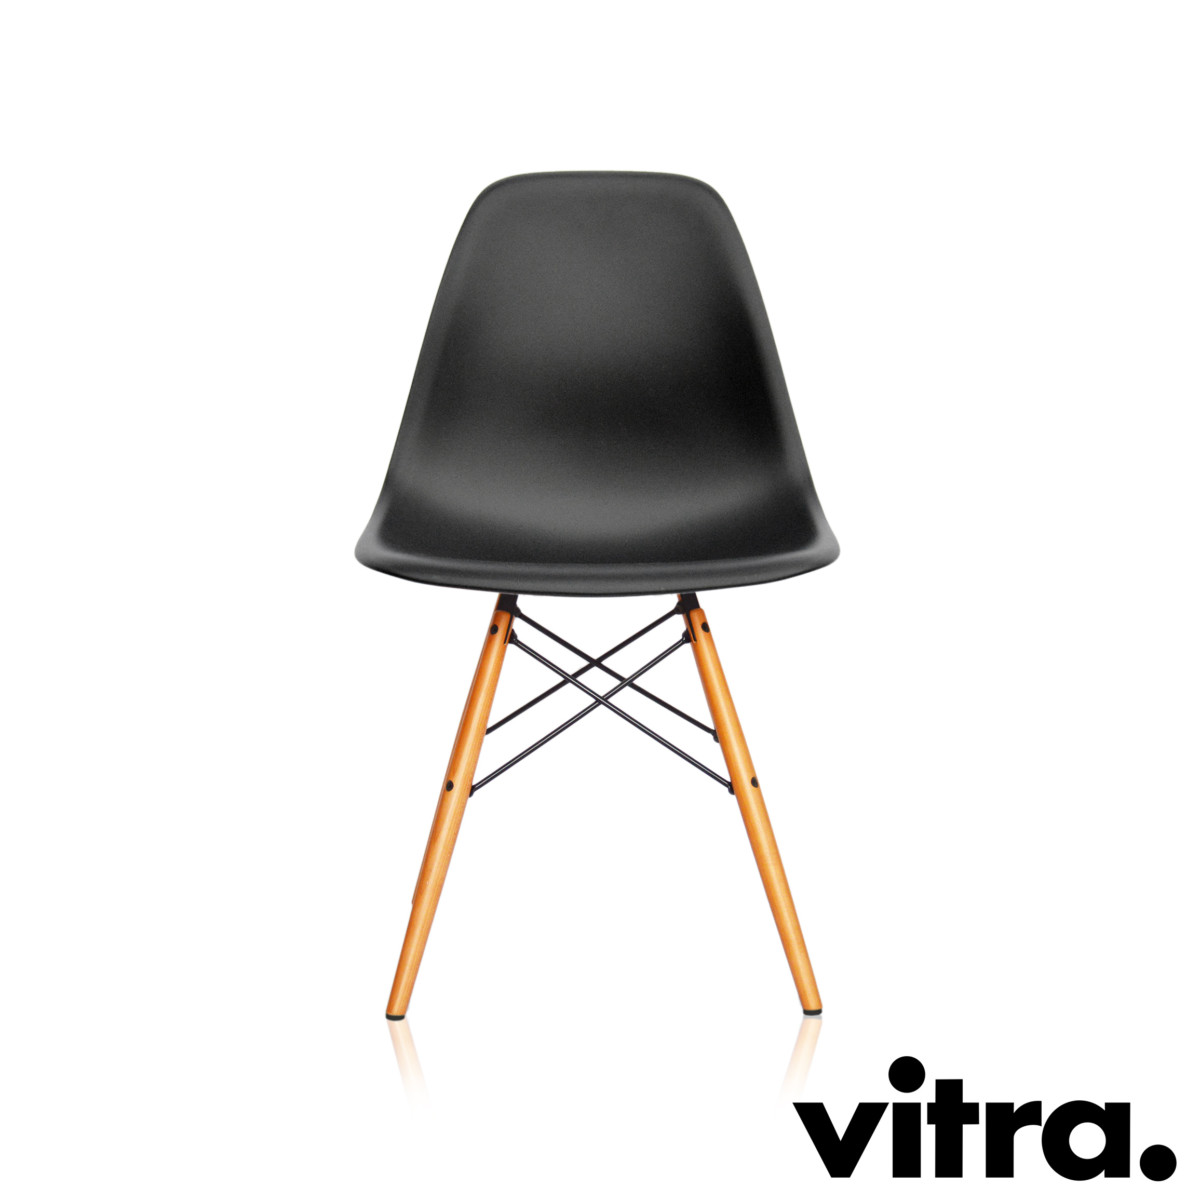 Interesting Midmodern Vitra Eames Plastic Side Sedia